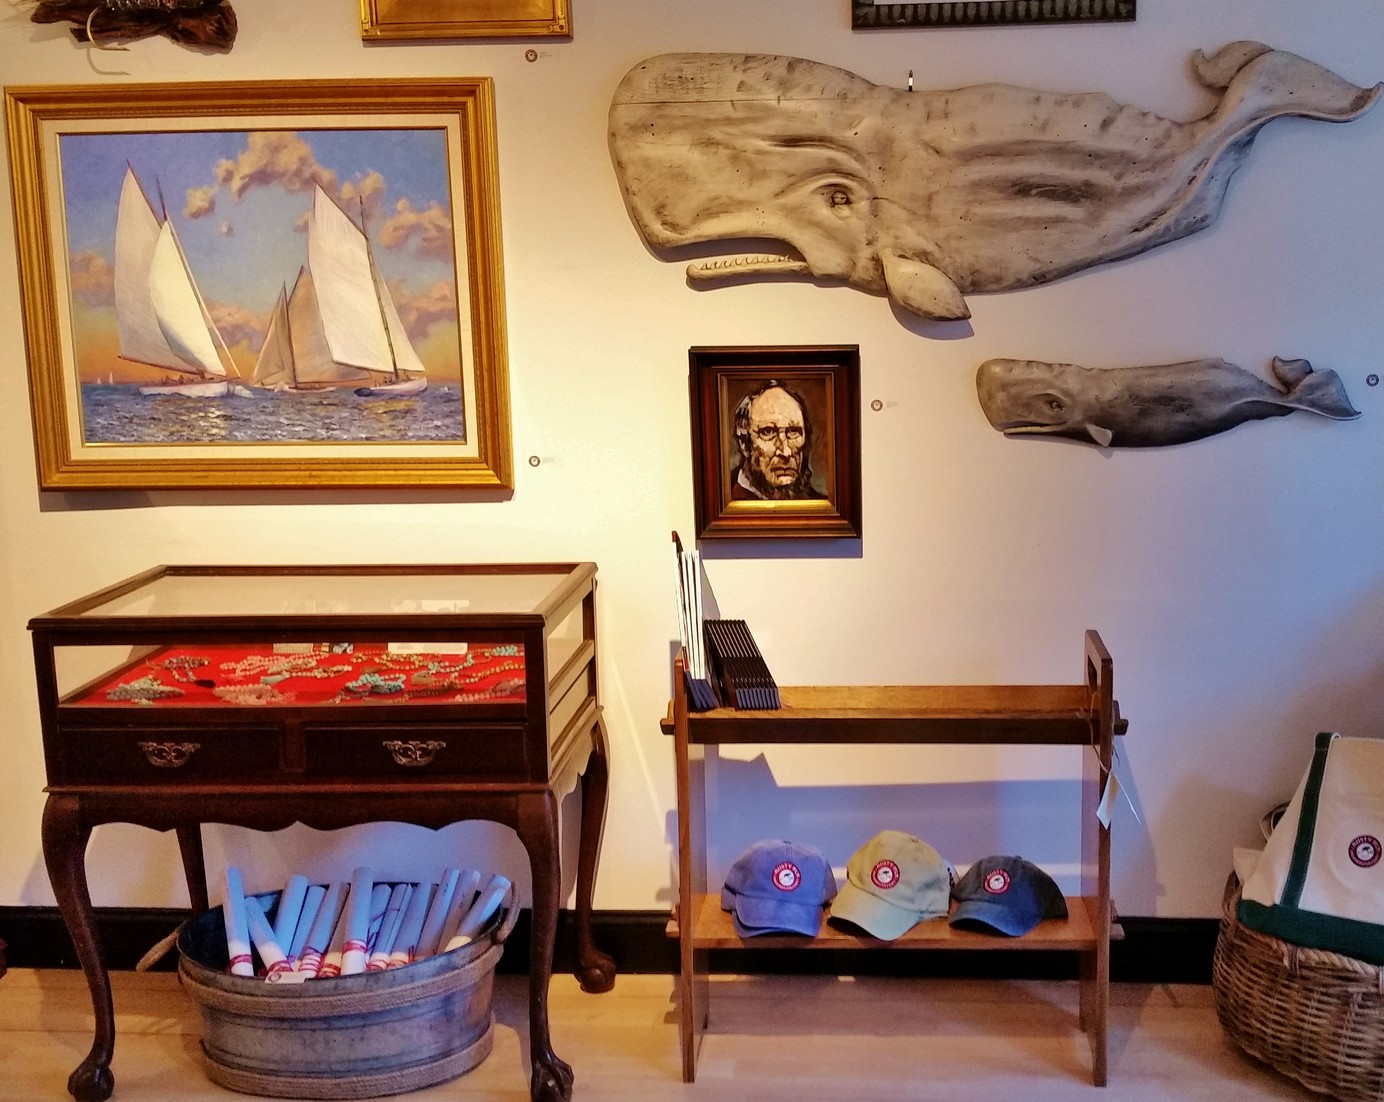 """The """"Librarian"""", pictured under the whales and Capt'n Ahab."""